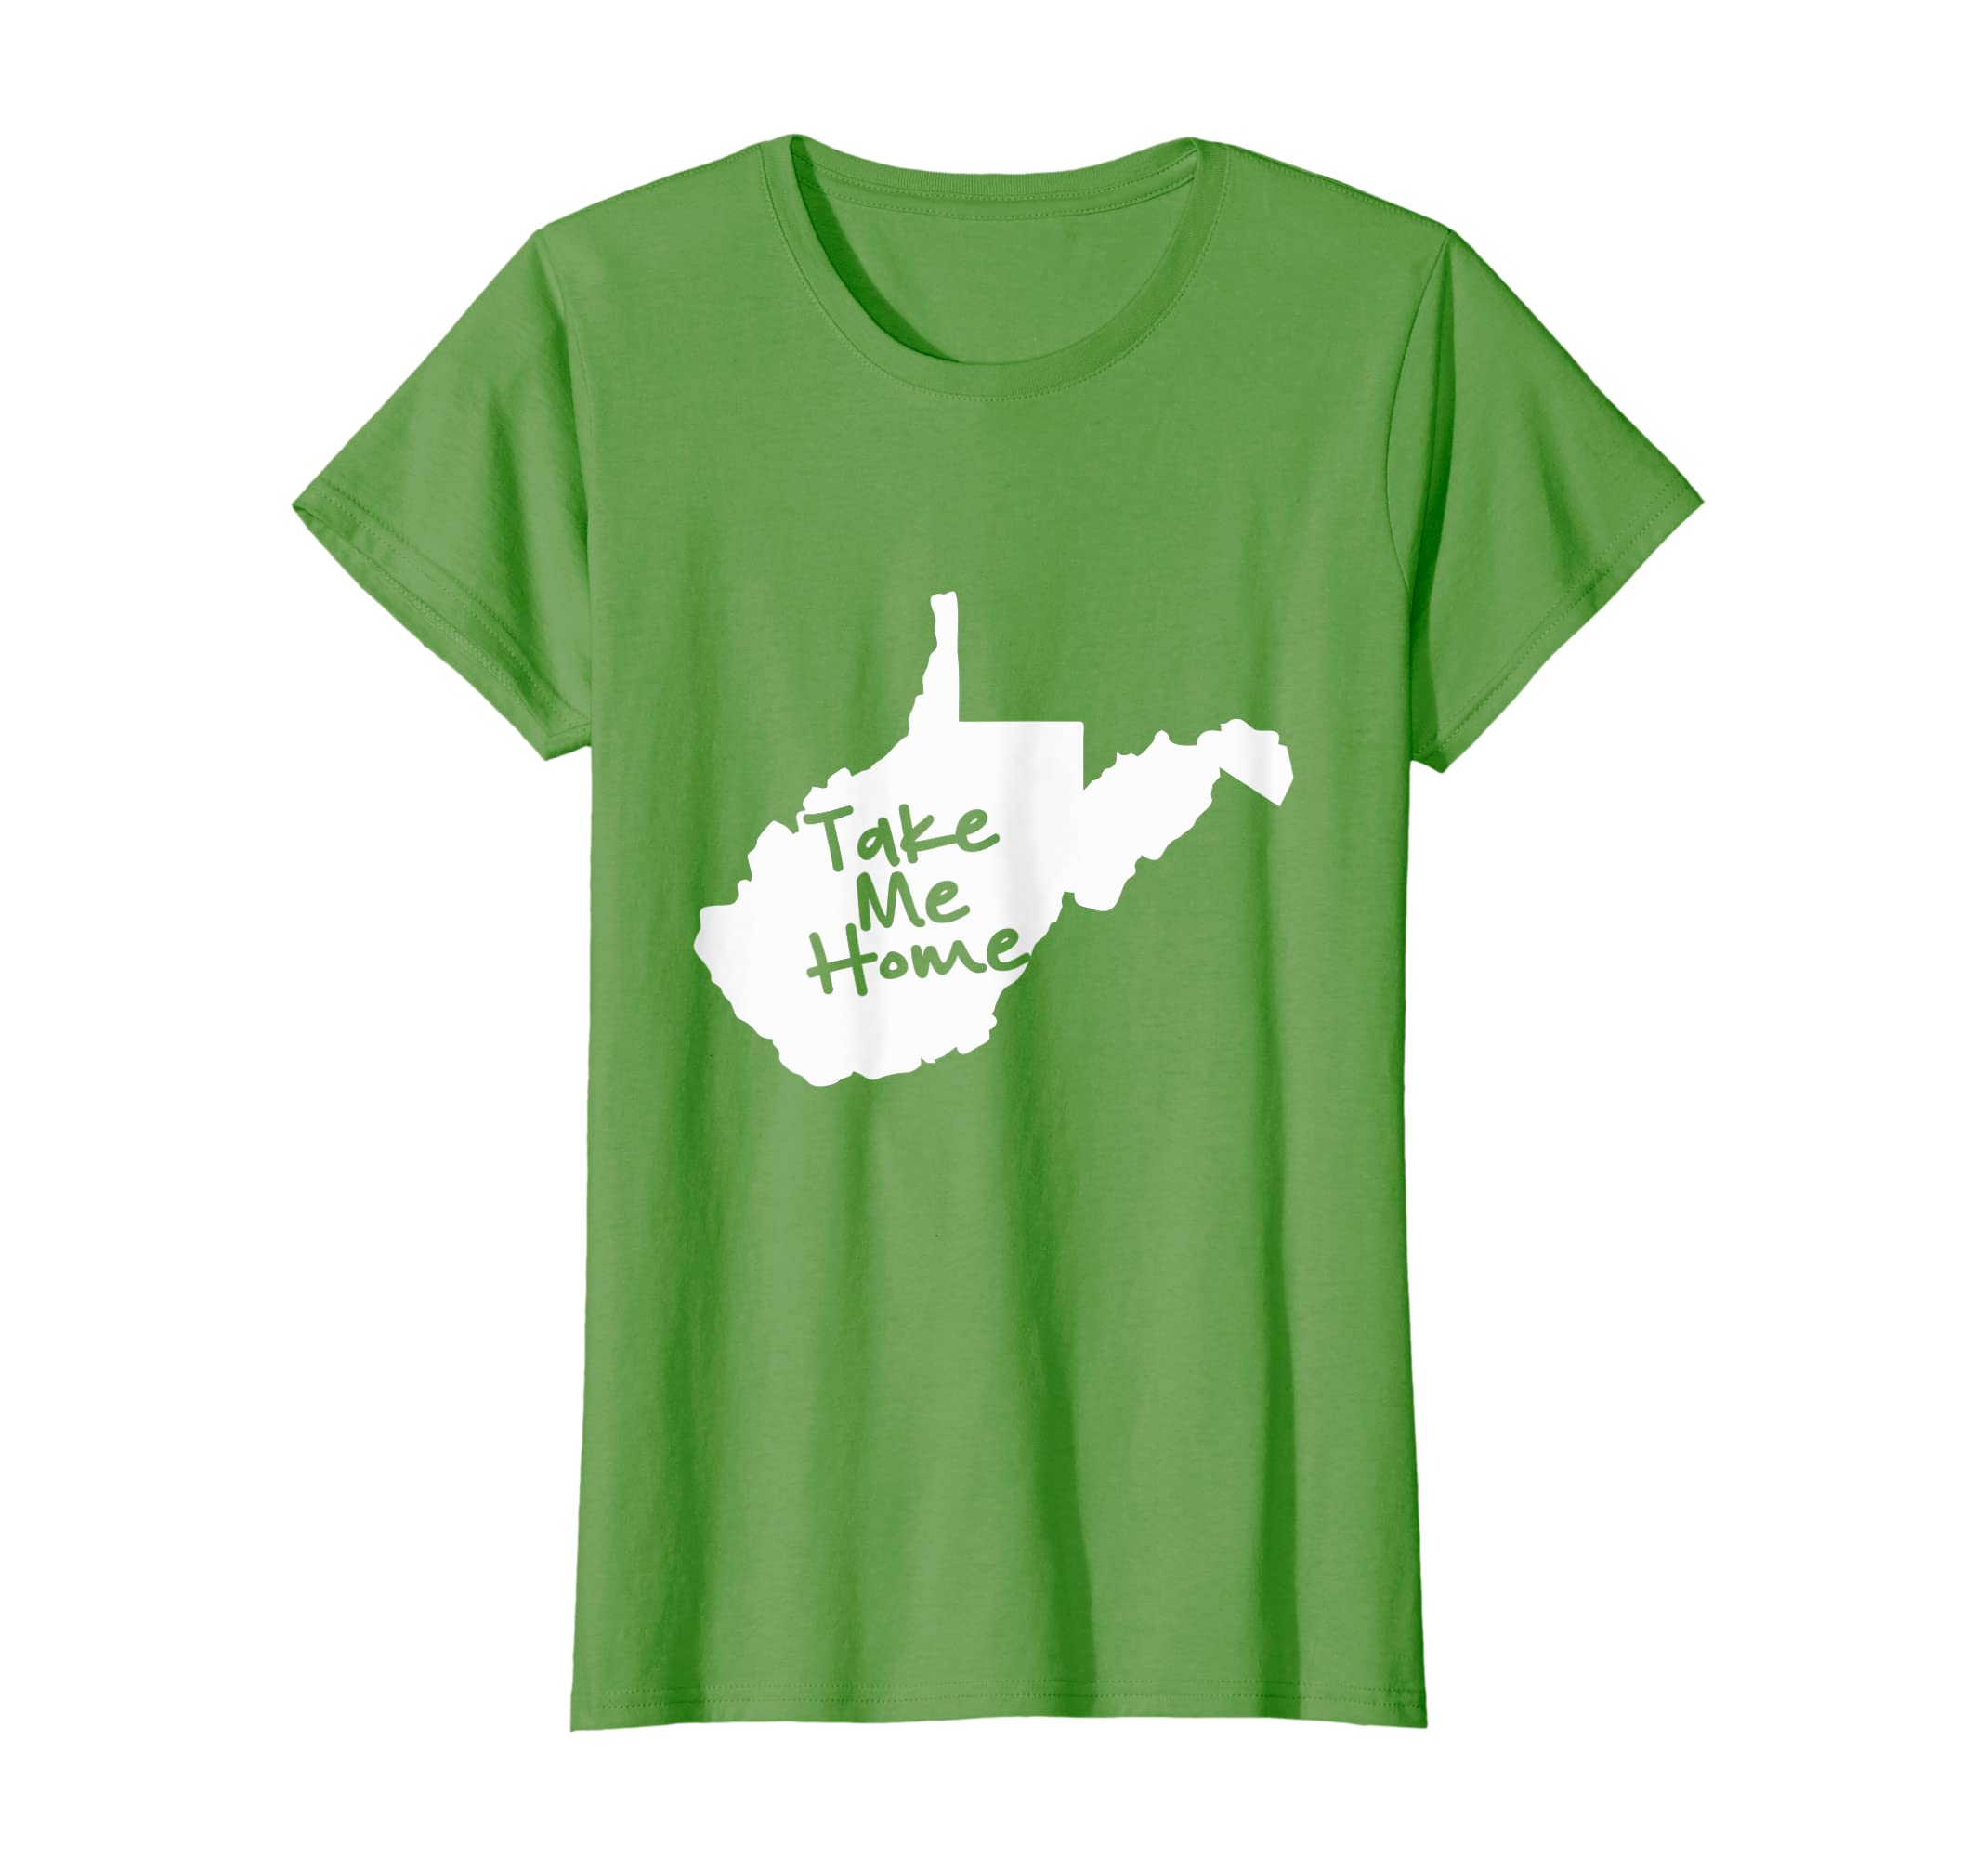 af913a30c4afd Amazon.com: WV Take Me Home T-shirt: Clothing